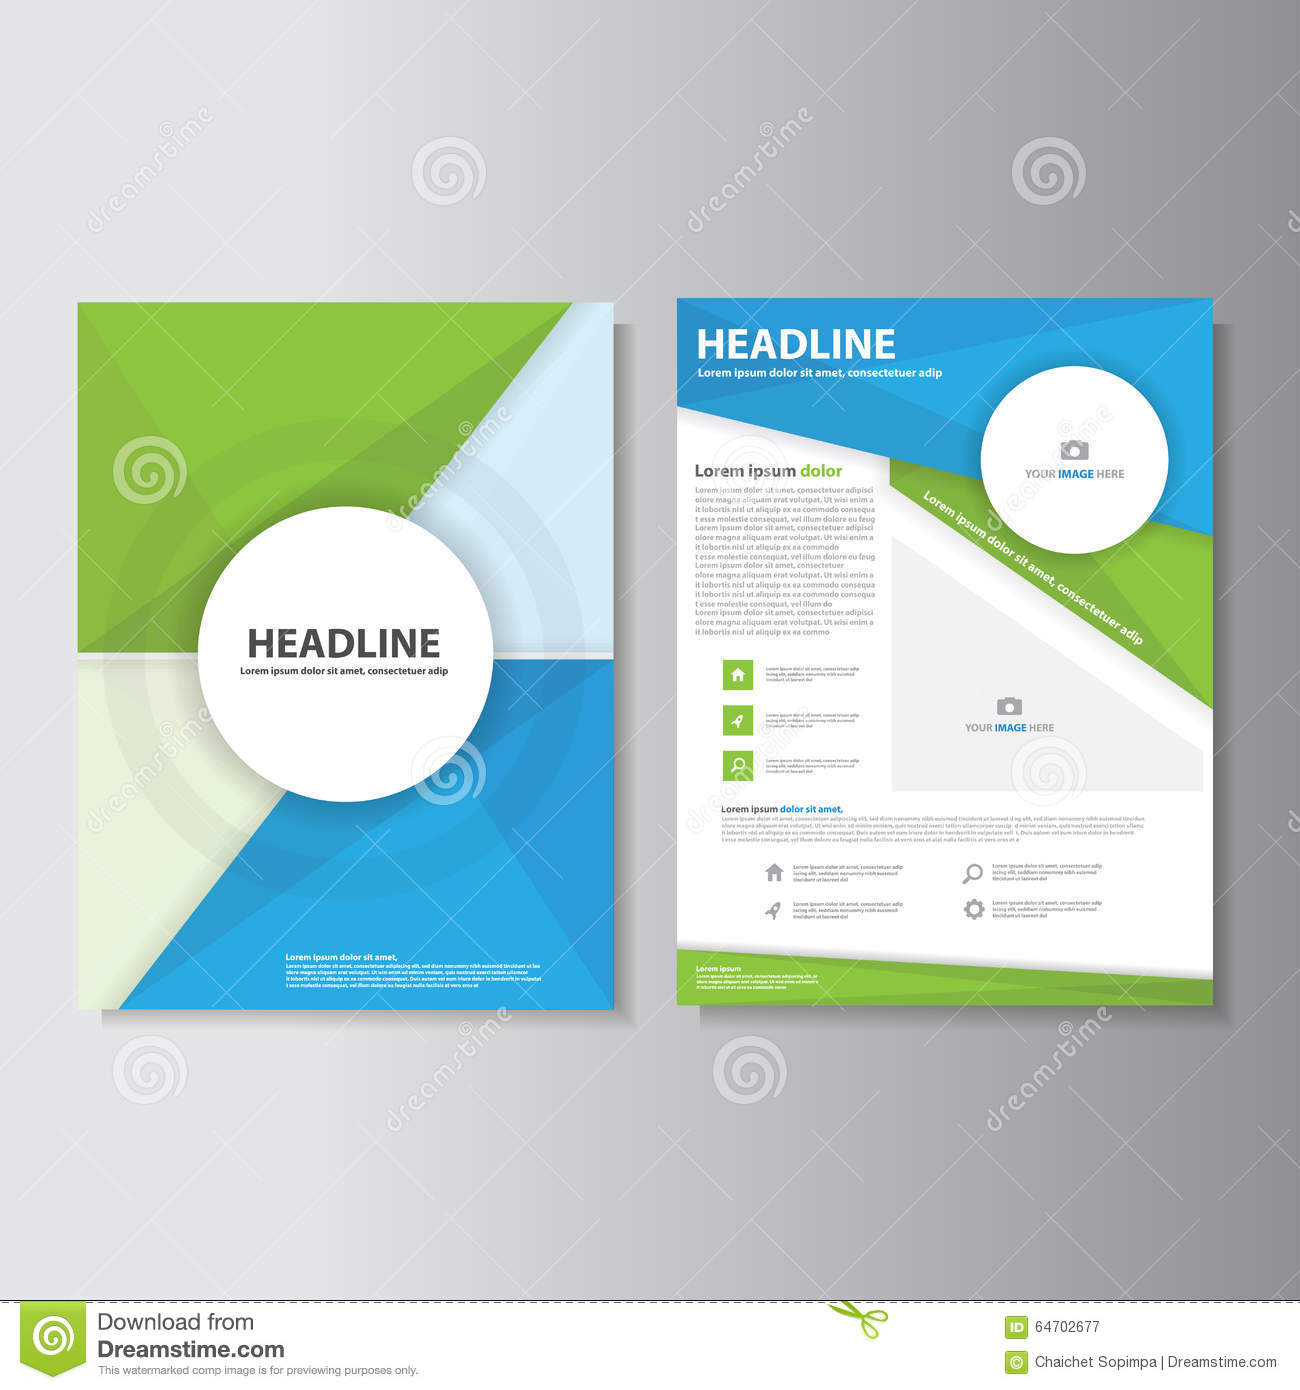 Green Blue Brochure Flyer Leaflet Infographic Presentation Templates Flat  Design Set For Marketing